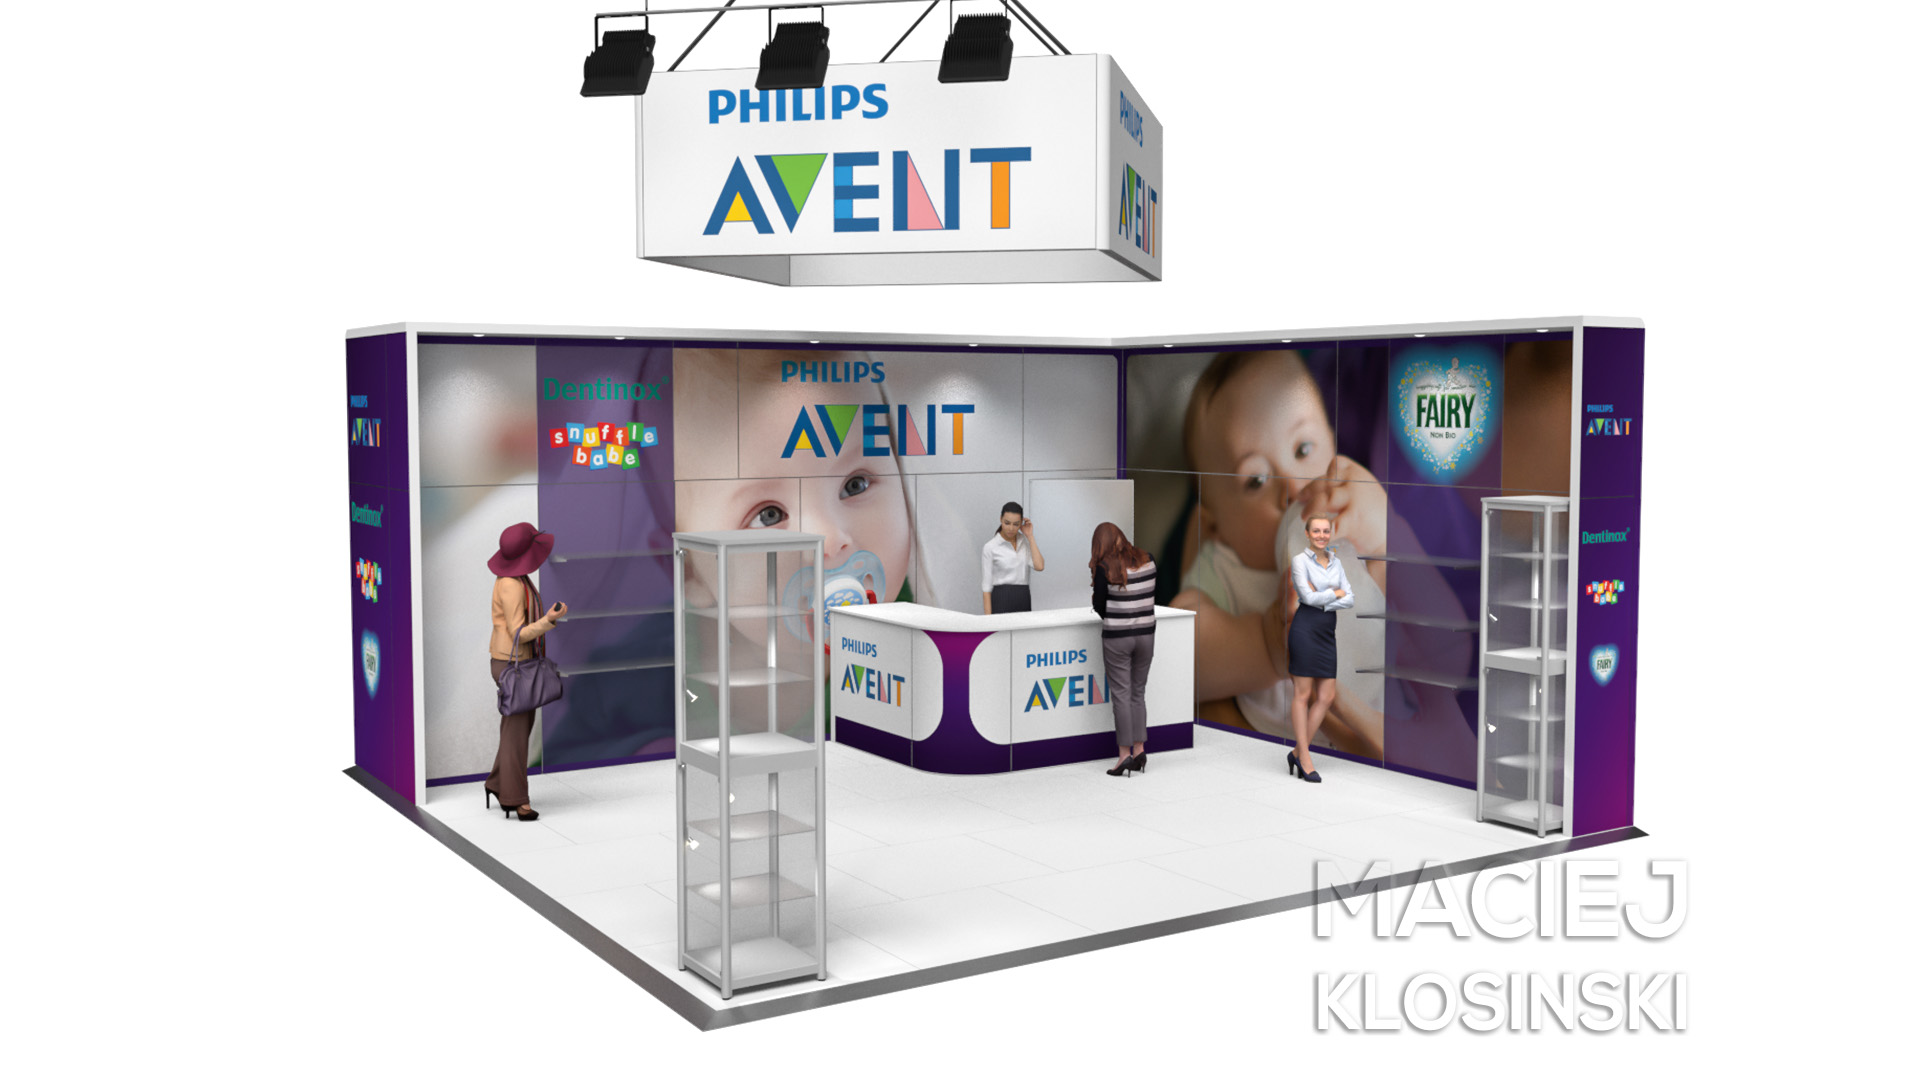 Philips Avent at Pregnancy & Baby Fair 2018